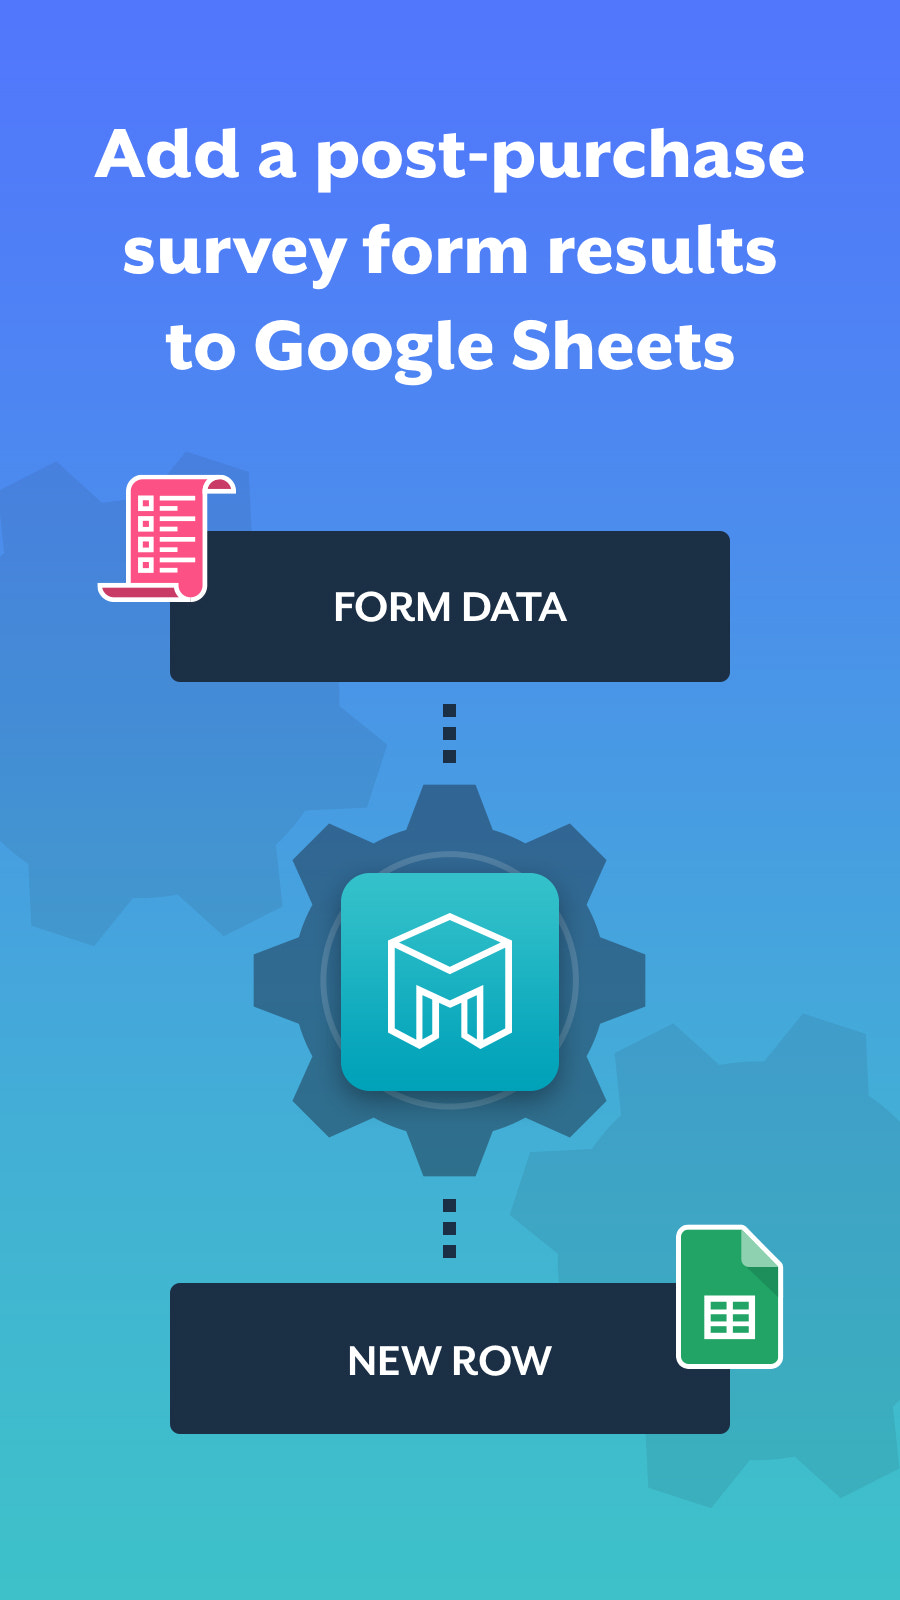 Add a Post-Purchase Survey Form and Send Results to Google Sheet